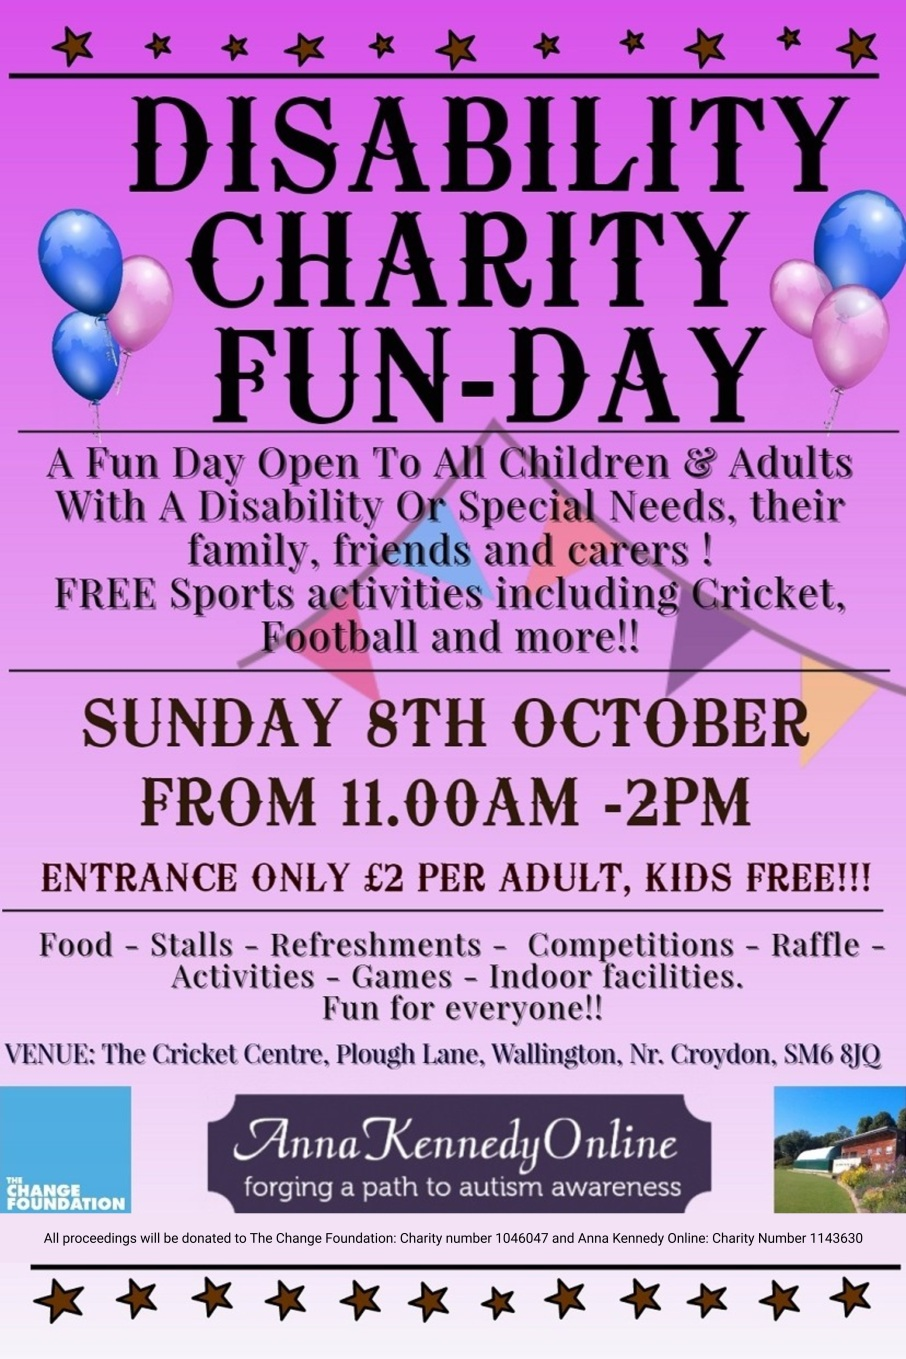 Disability Fun Day 8th October 2017.jpg